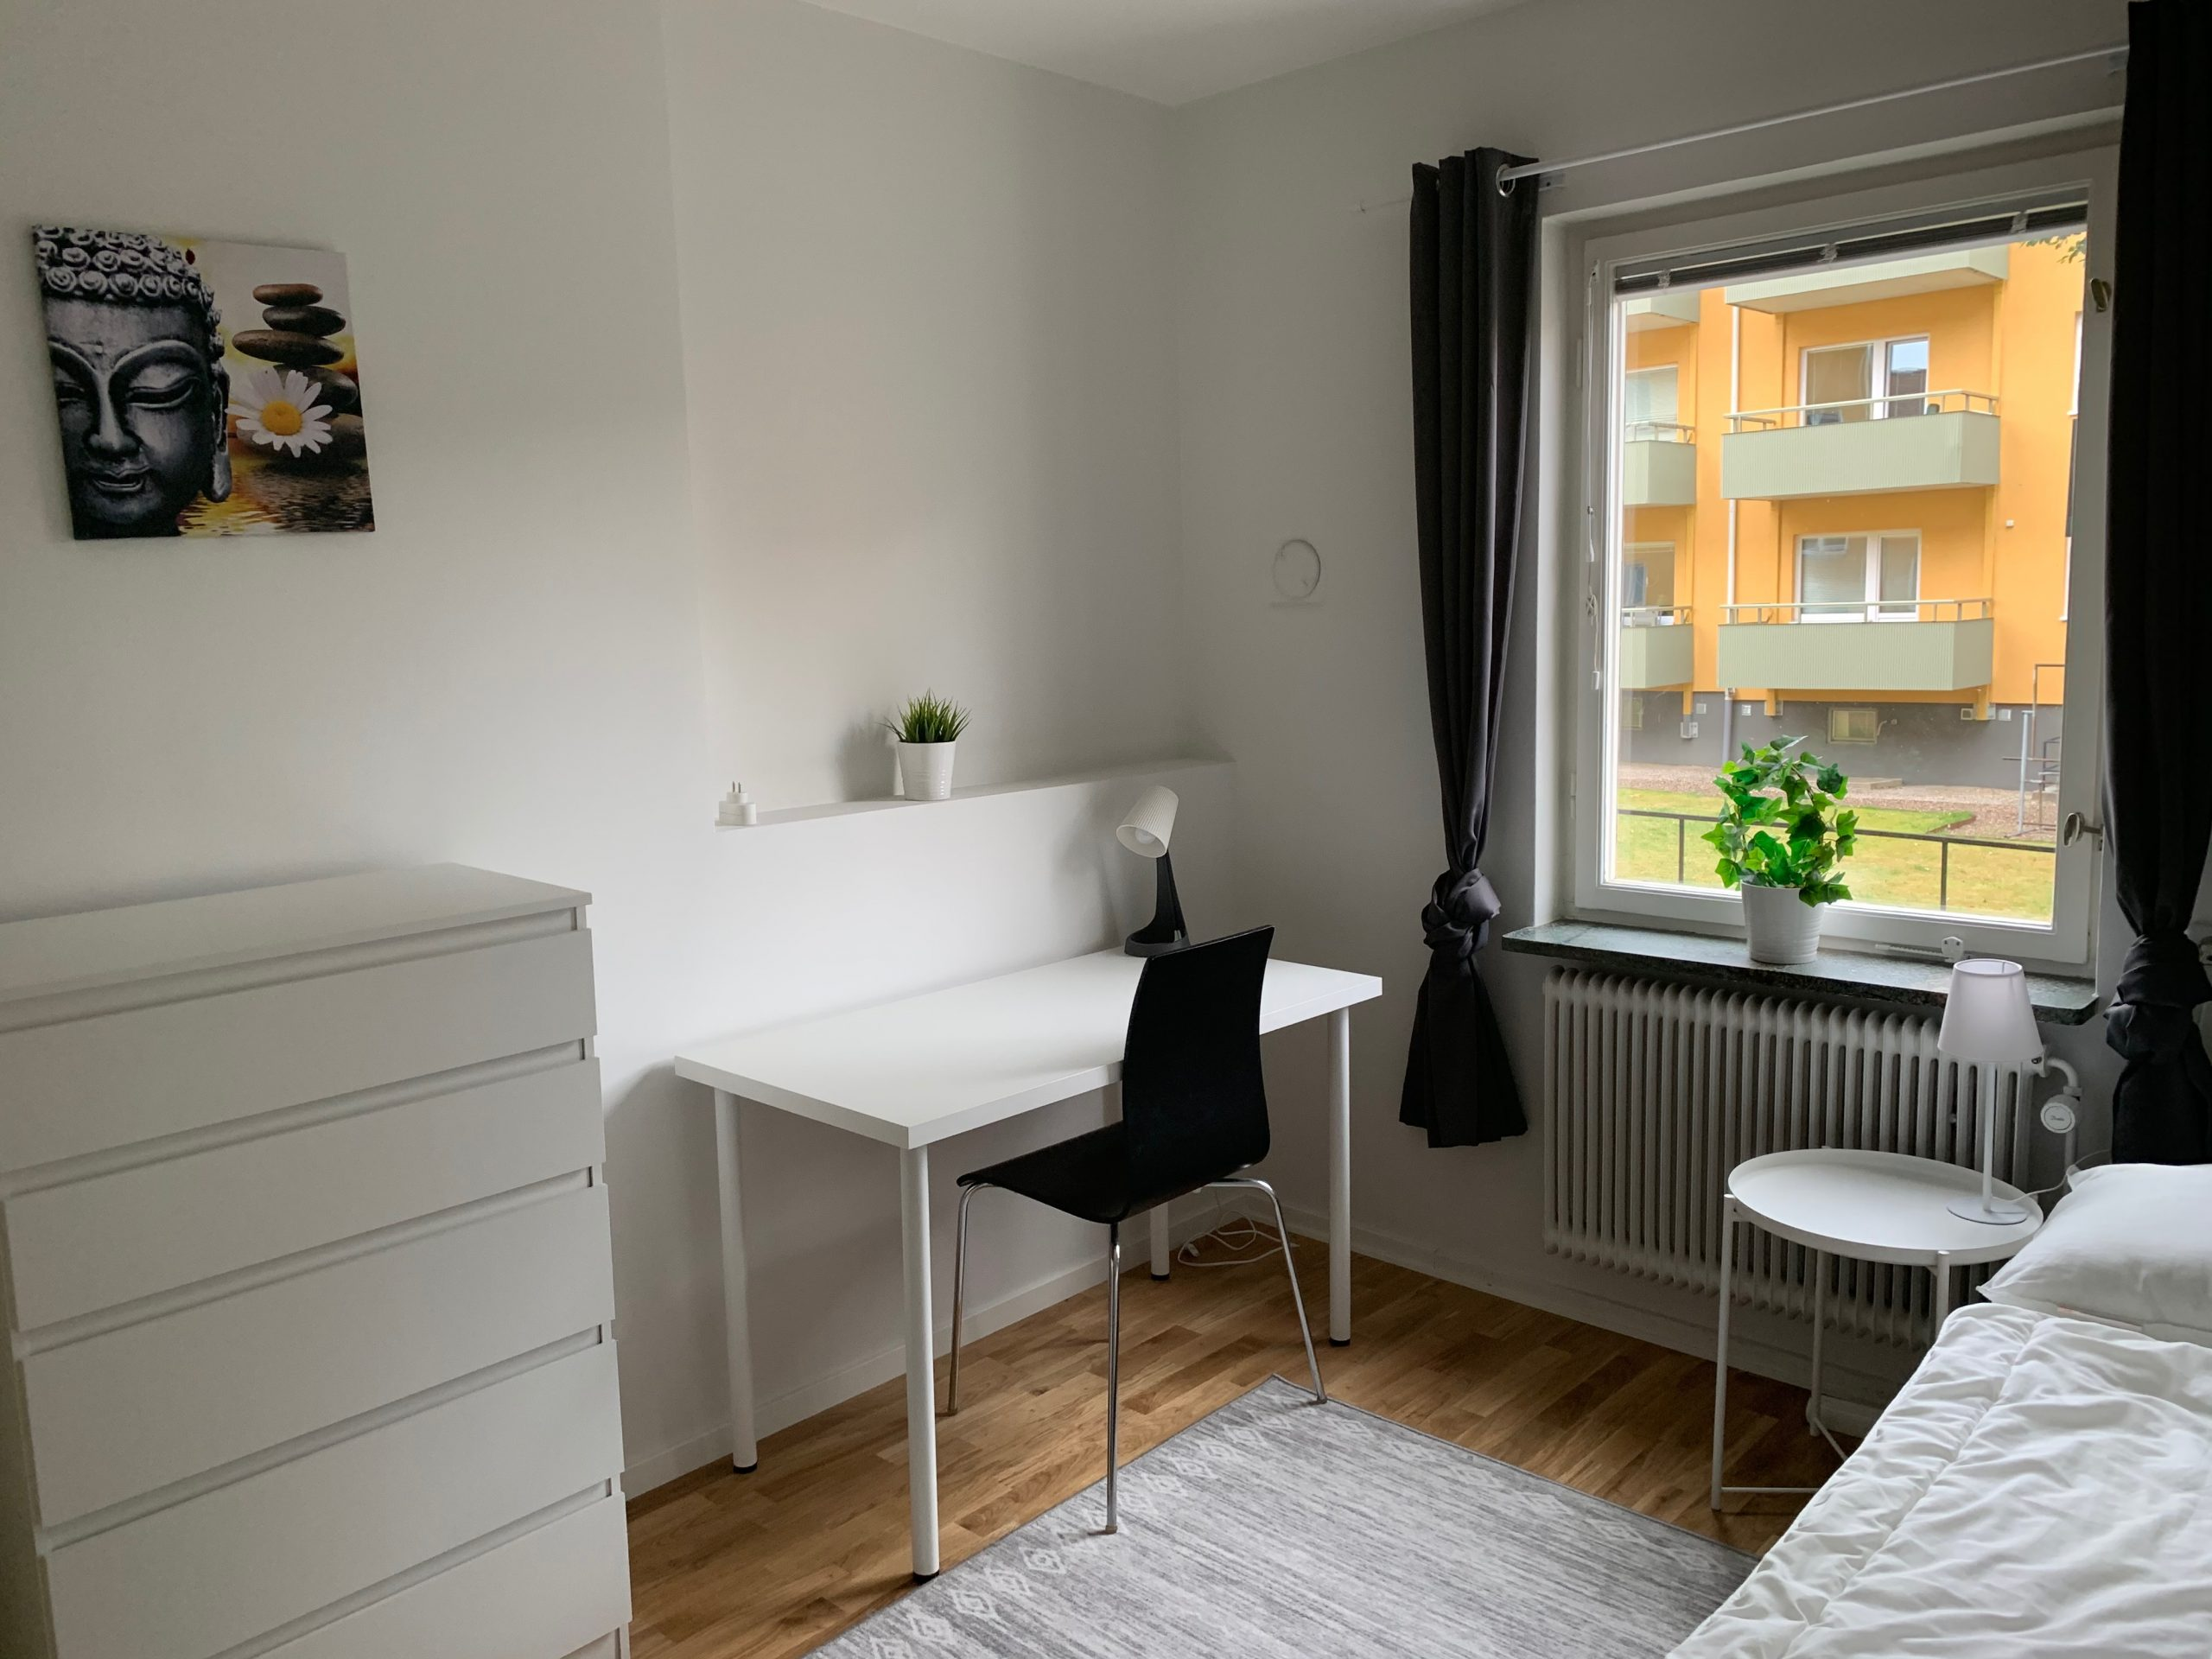 business accommodations, furnished apartment, stay easy